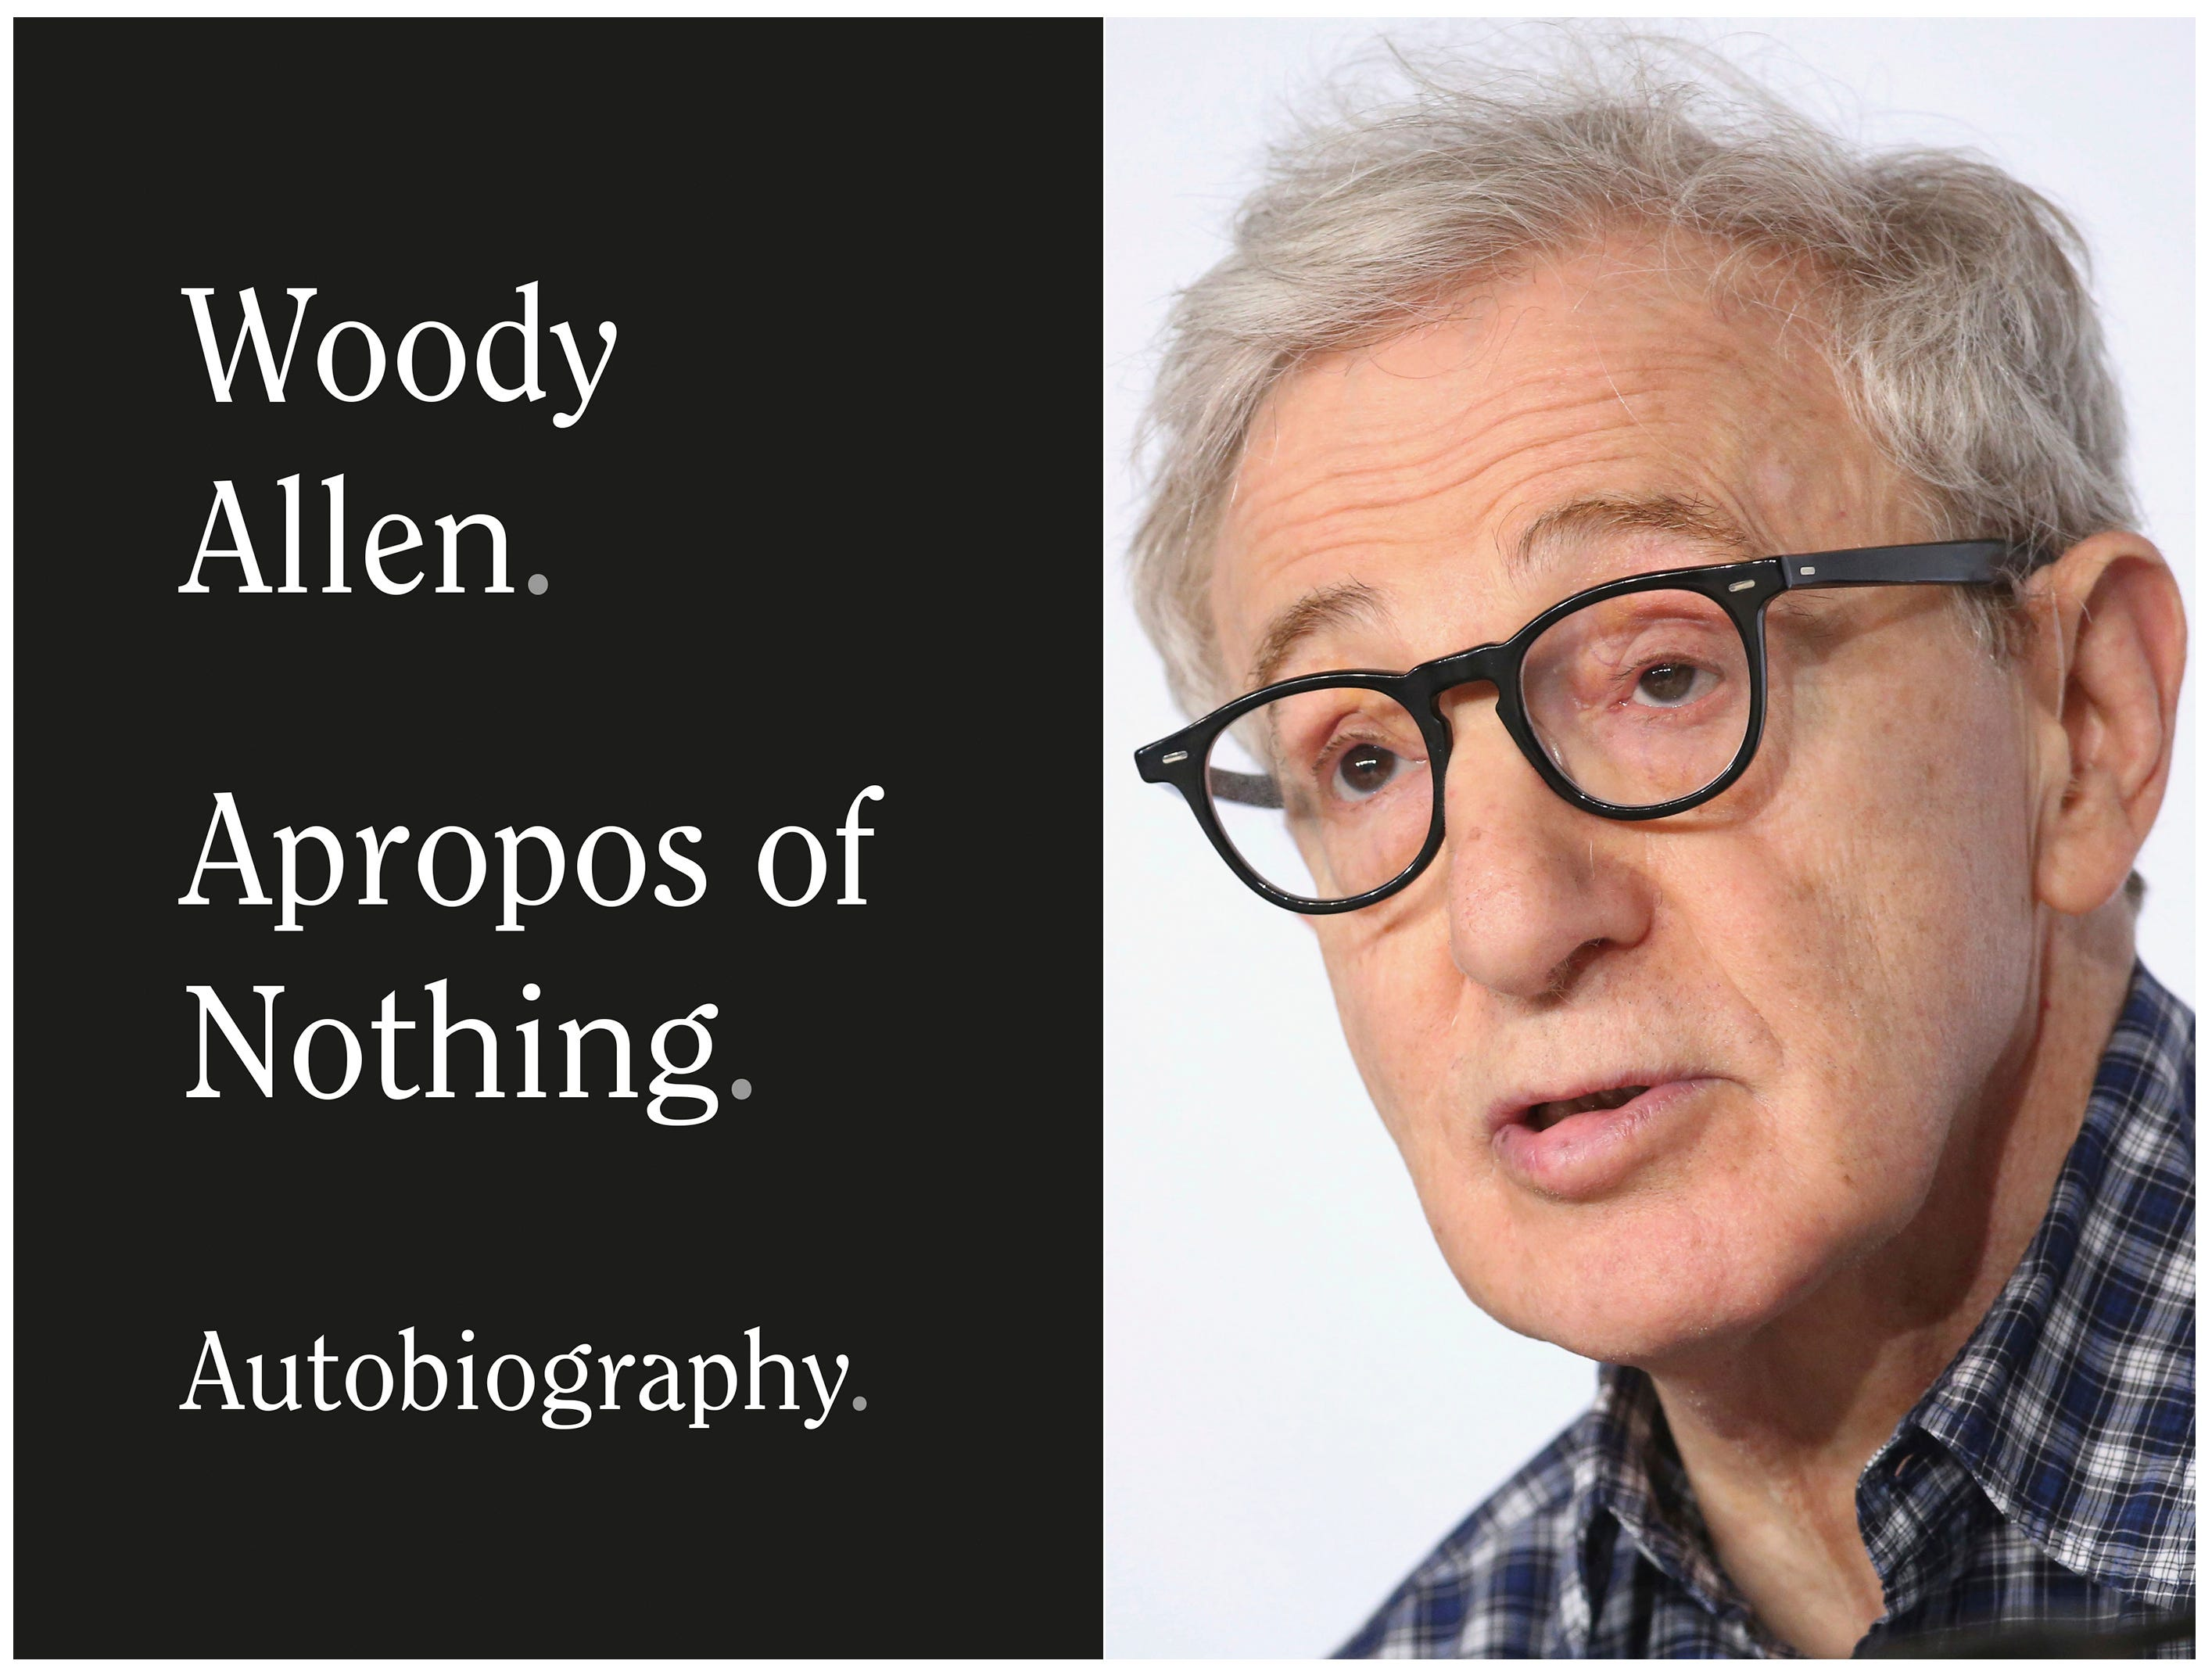 Publisher drops Woody Allen s memoir amid Ronan Farrow criticism, employee protests